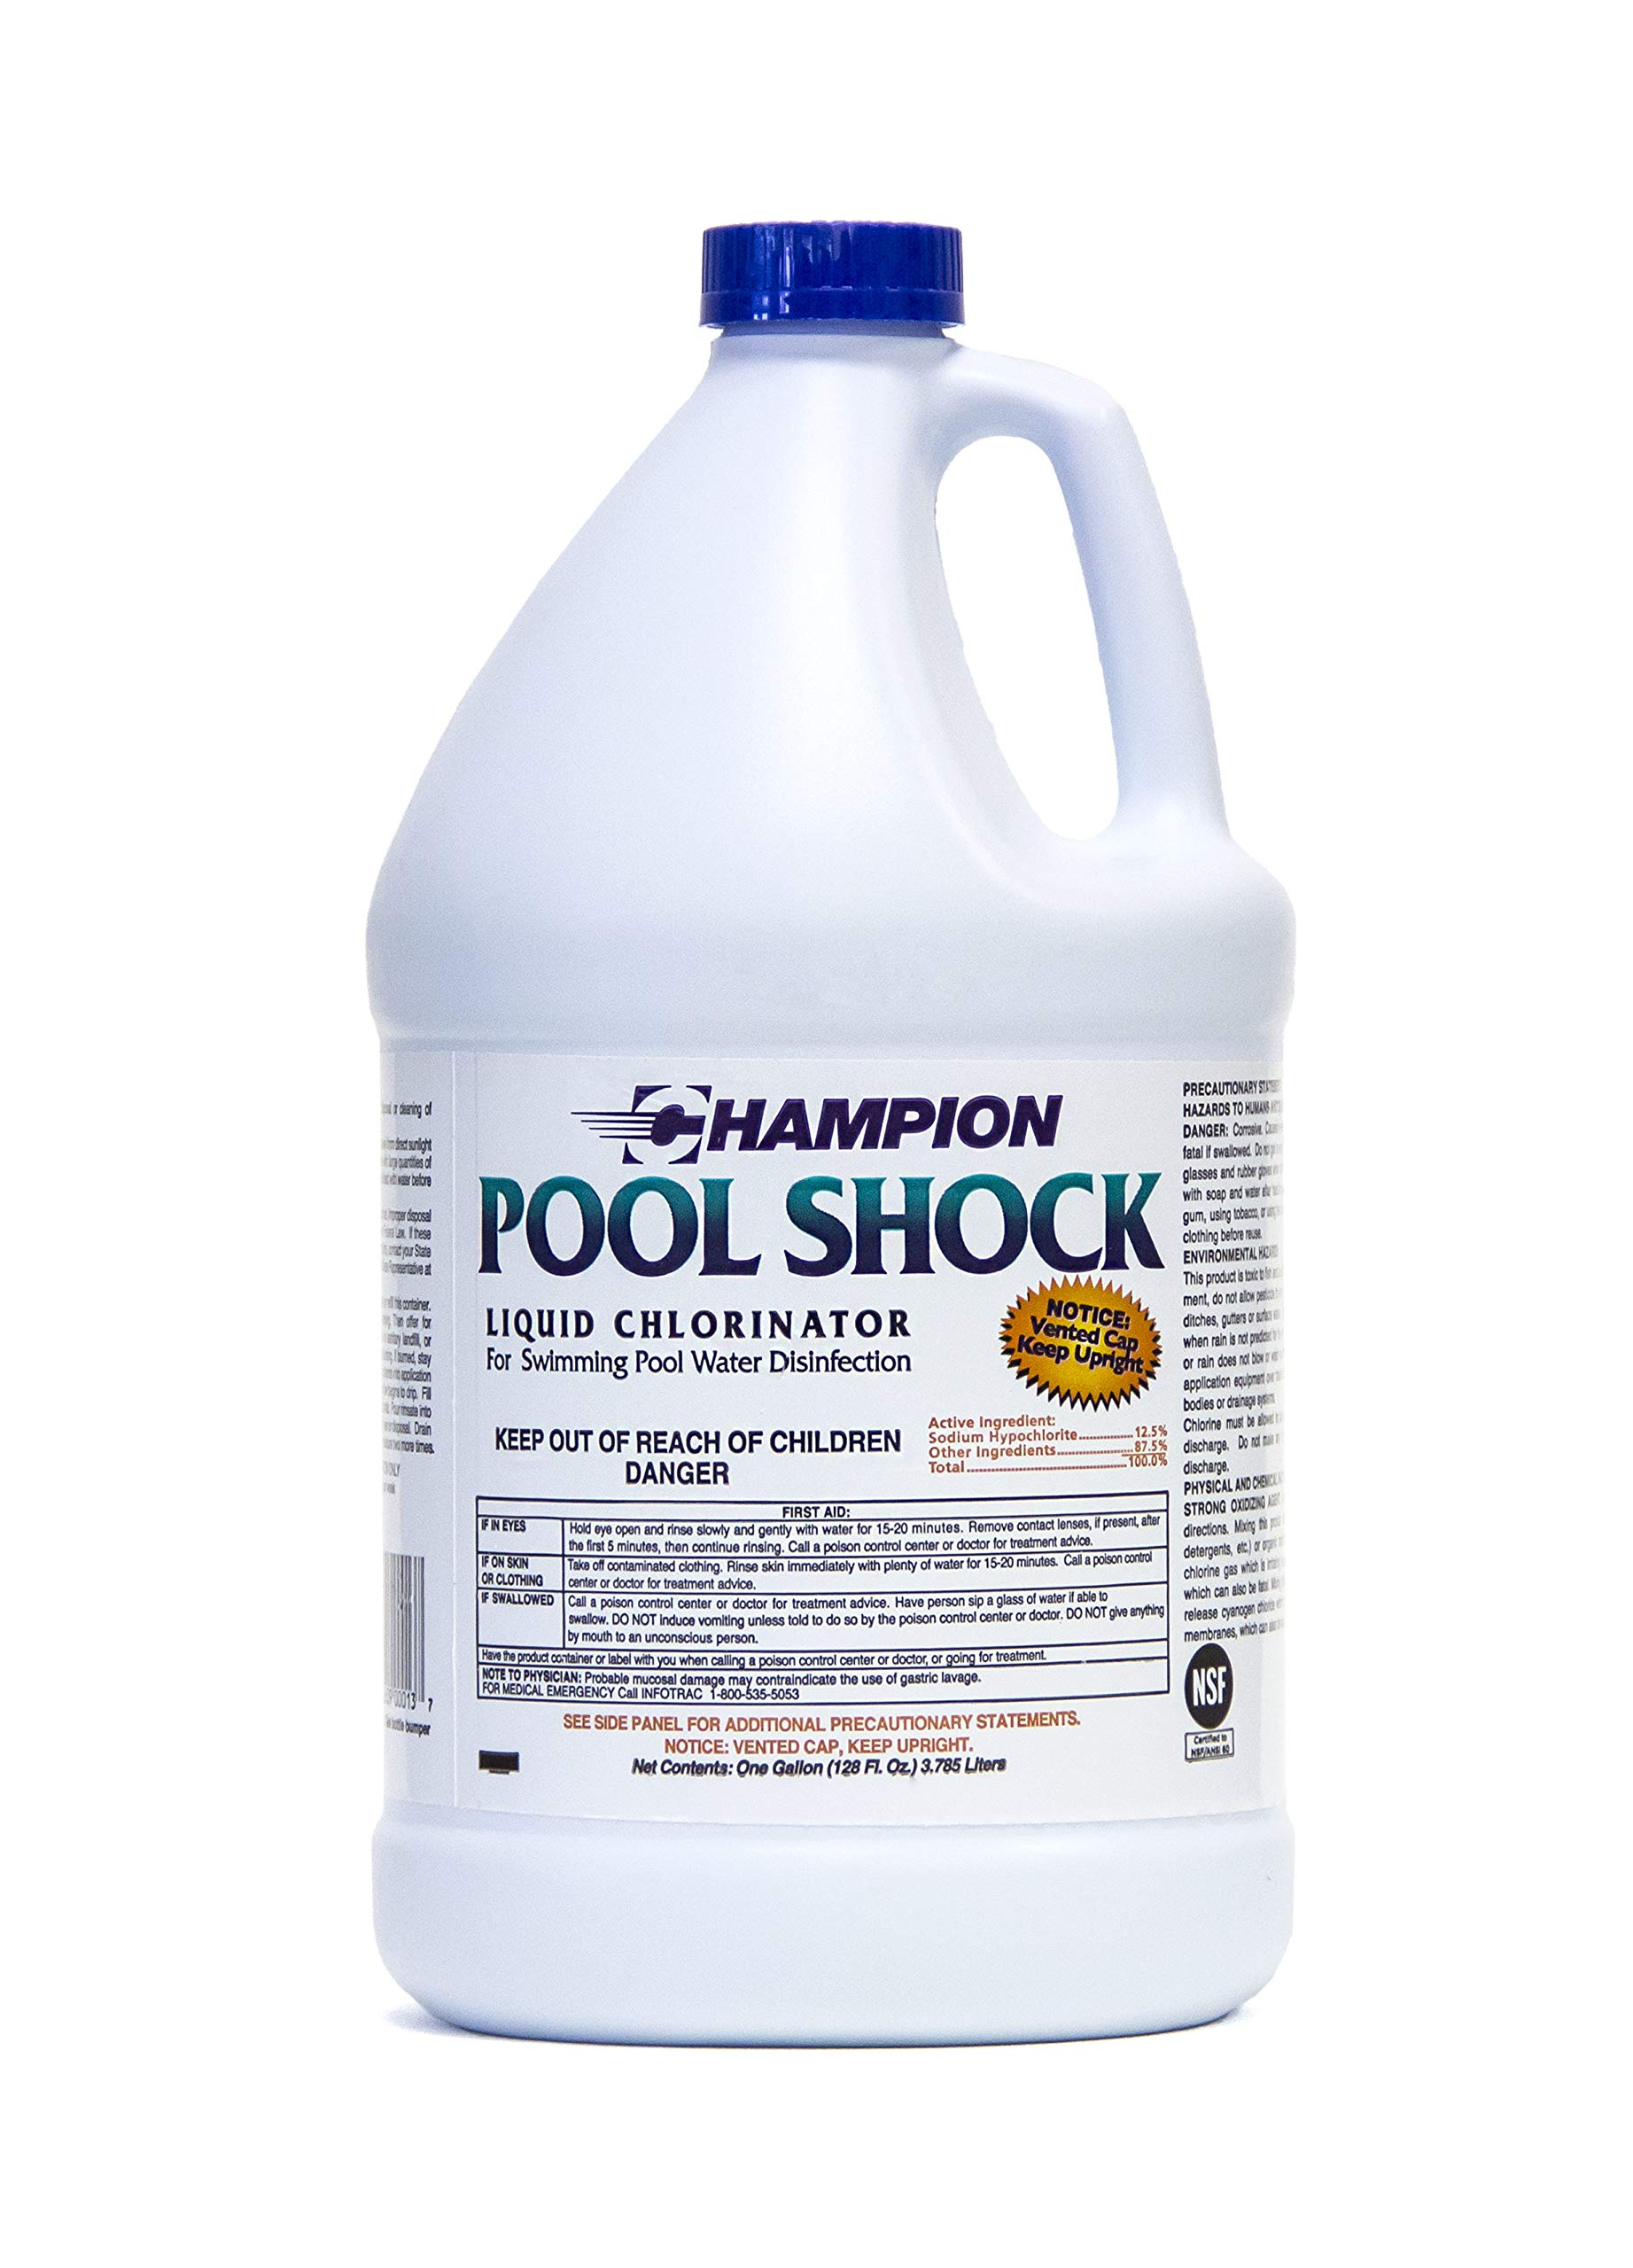 Liquid Chlorine Pool Shock - Commercial Grade 12.5% Concentrated Strength - 1 Gallon by Pool Shock Liquid Chlorinator